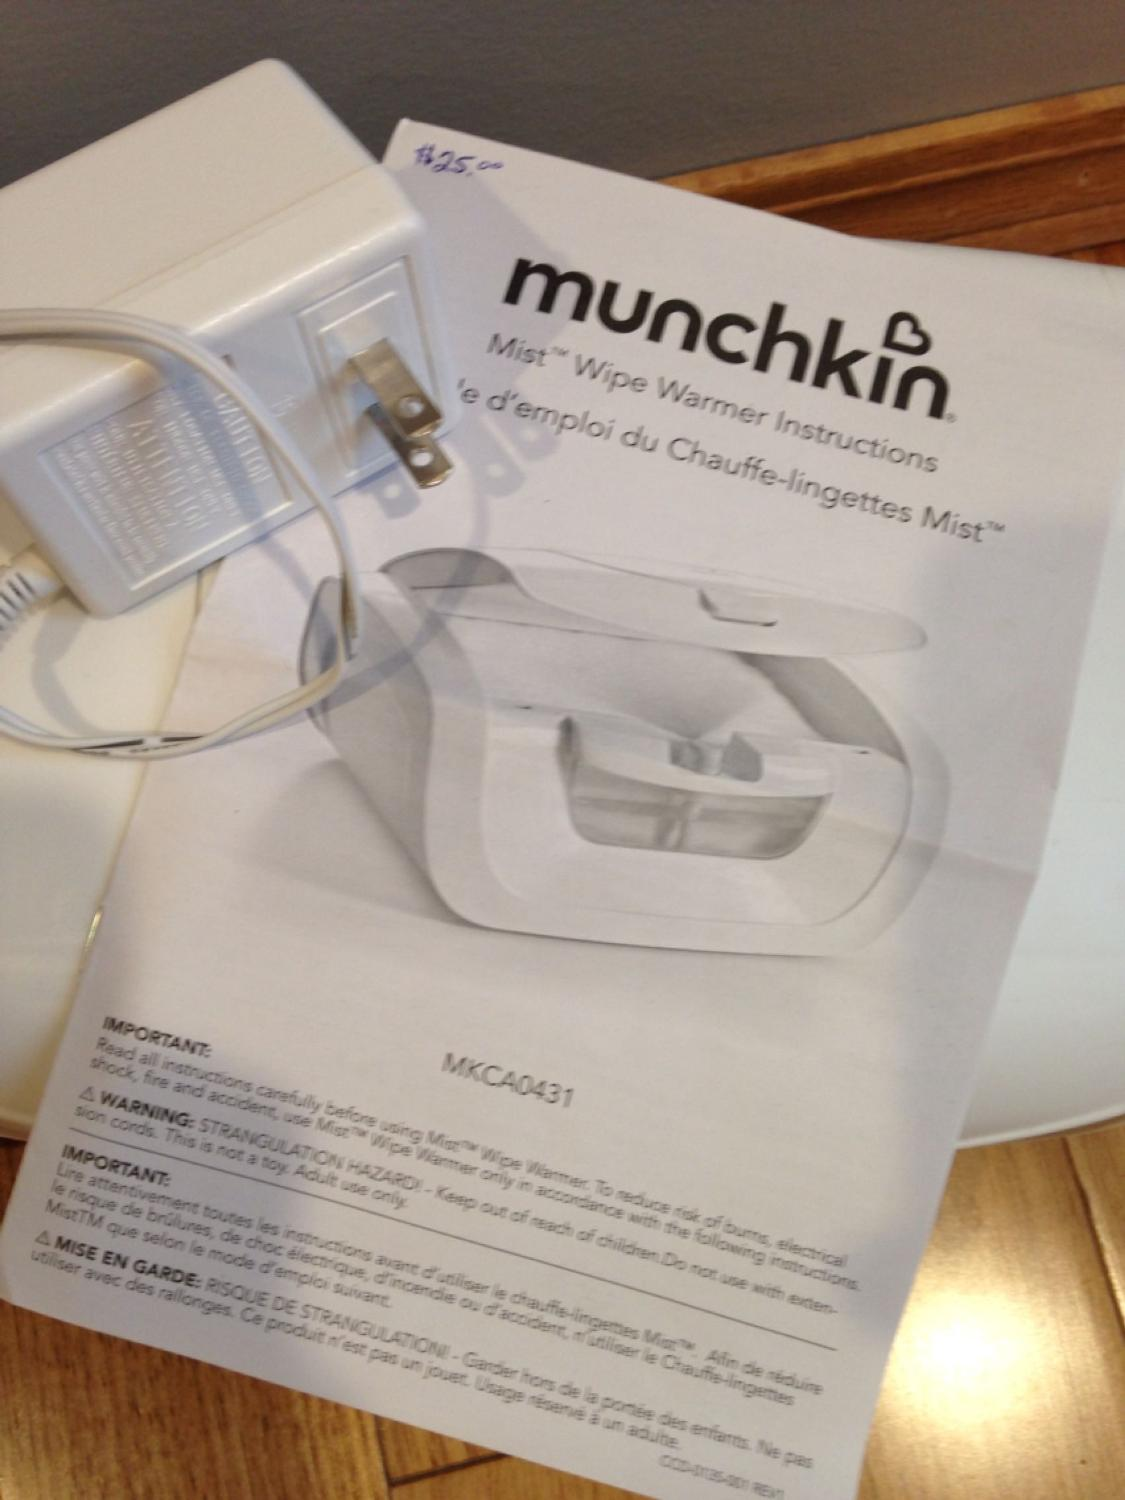 Find More Munchkin Mist Wipe Warmer For Sale At Up To 90 Off